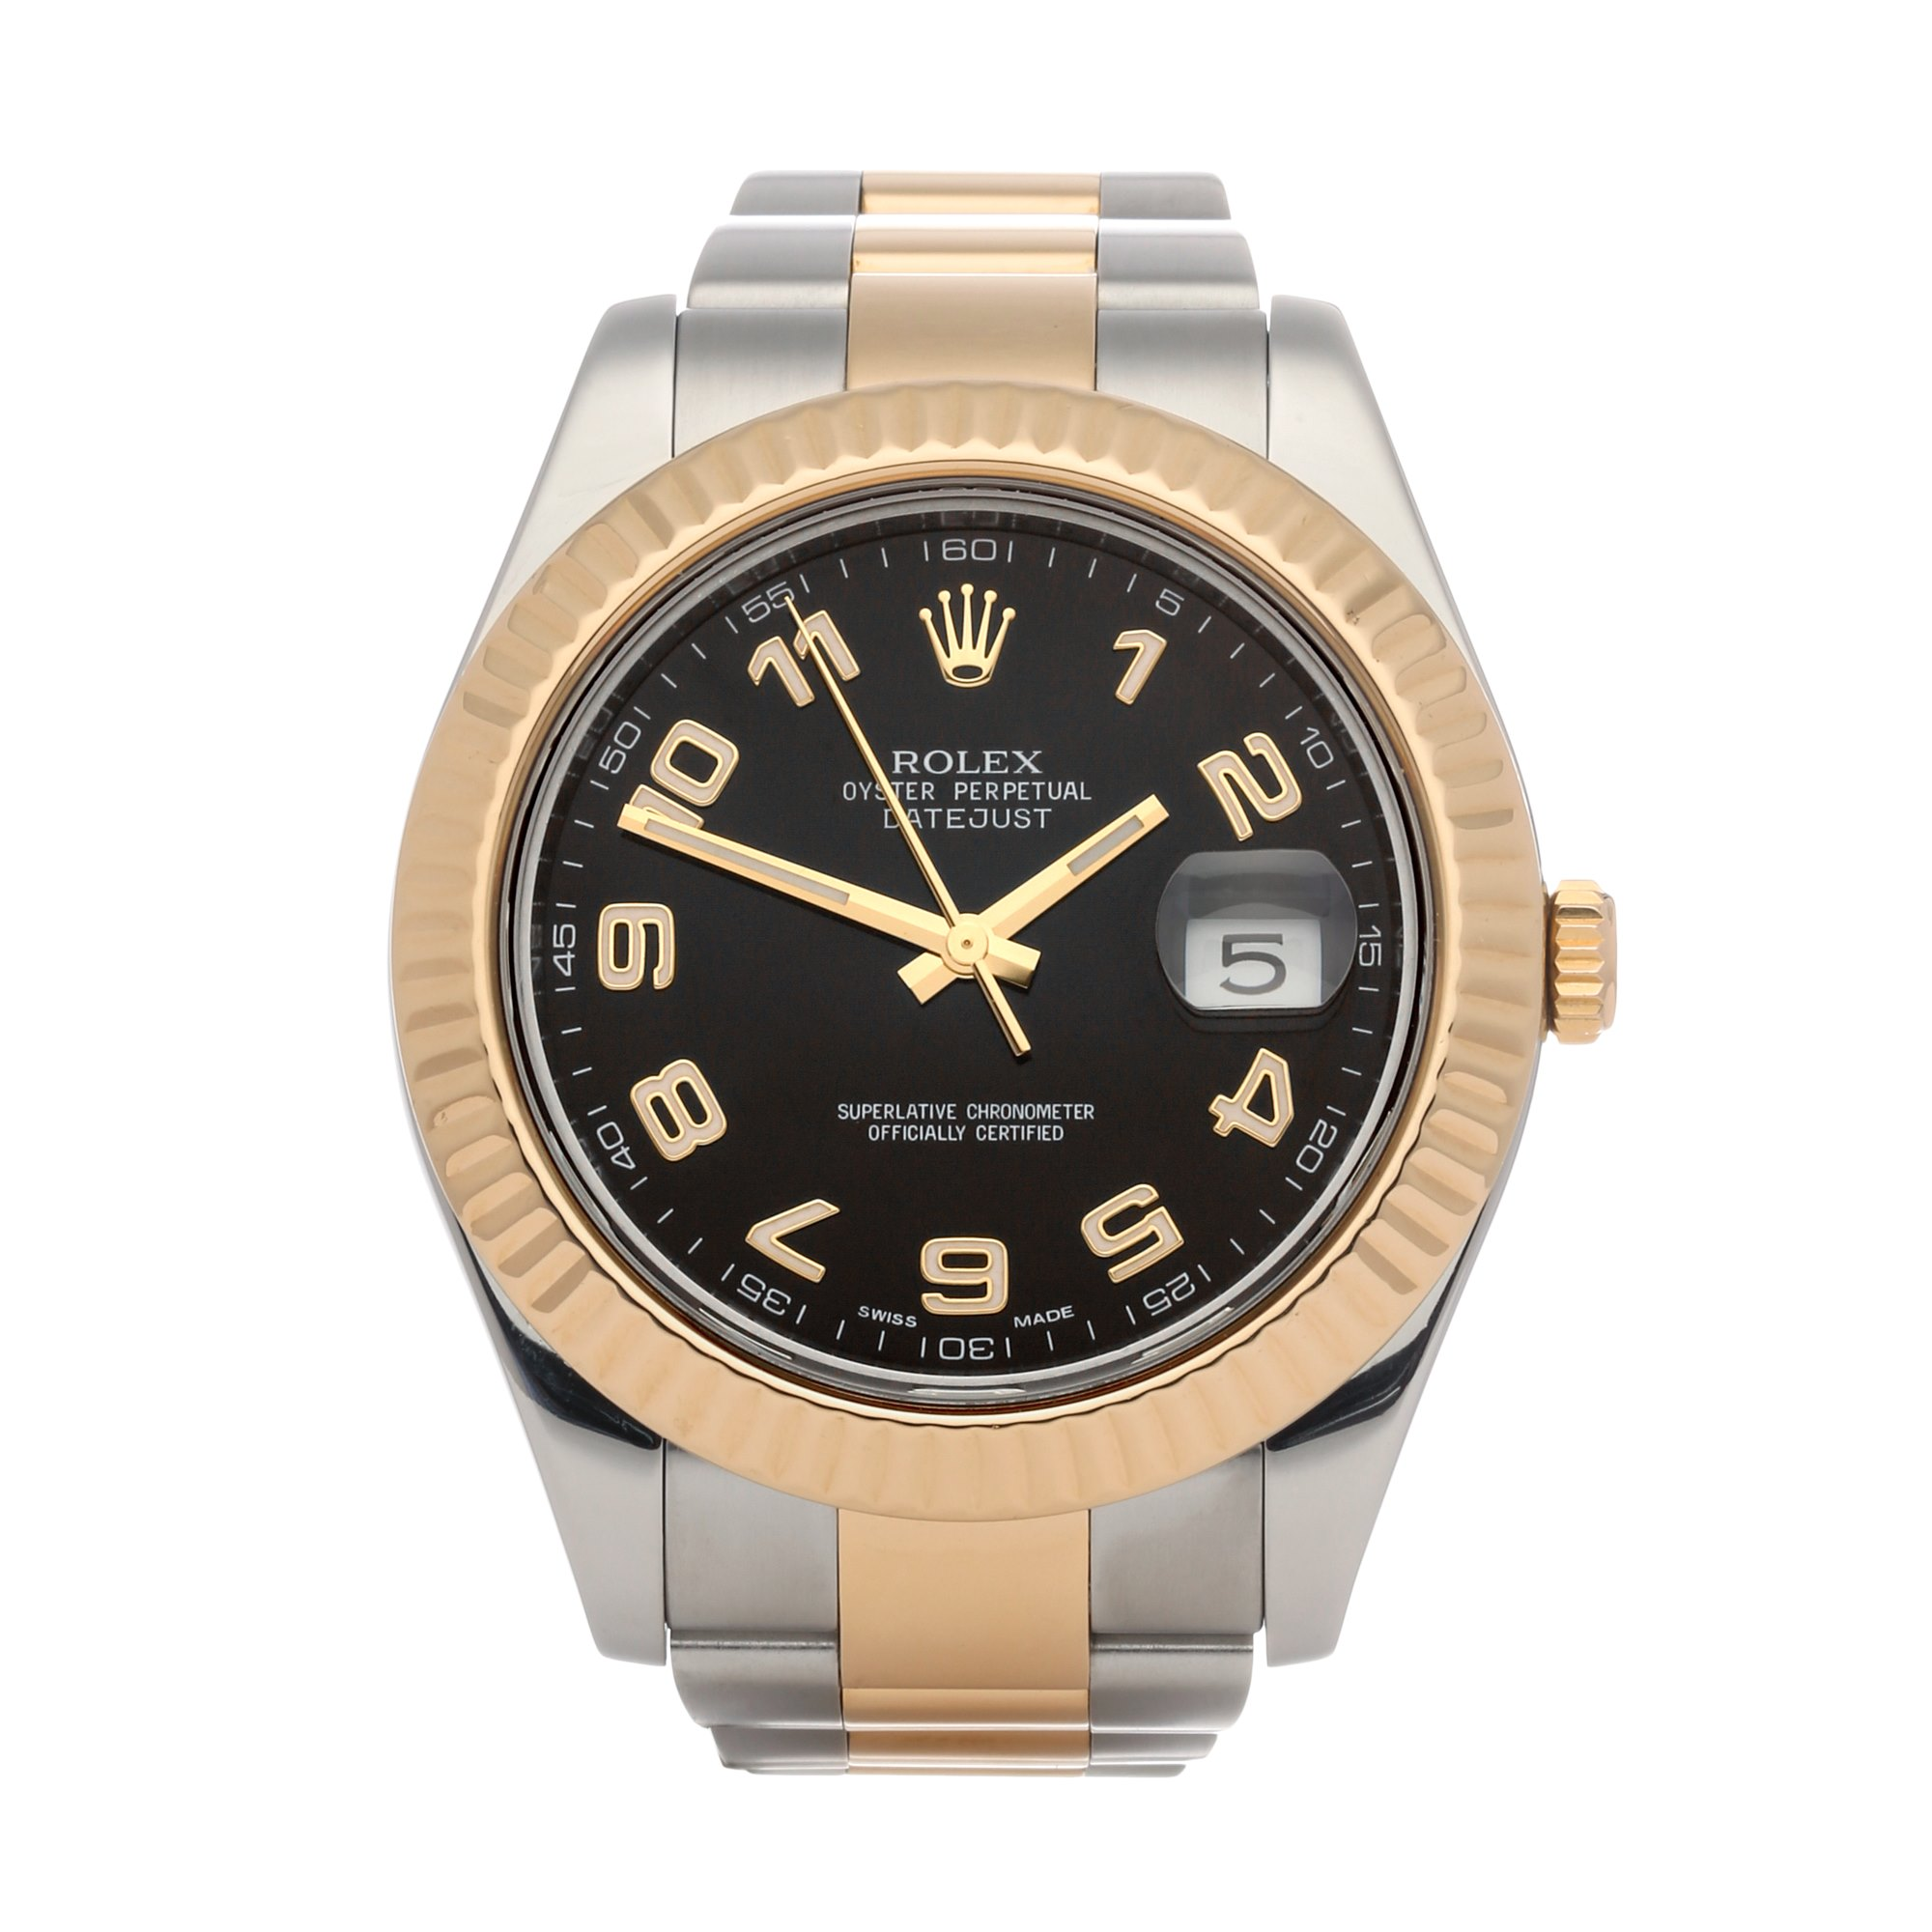 Rolex Datejust 41 18K Yellow Gold & Stainless Steel 116333